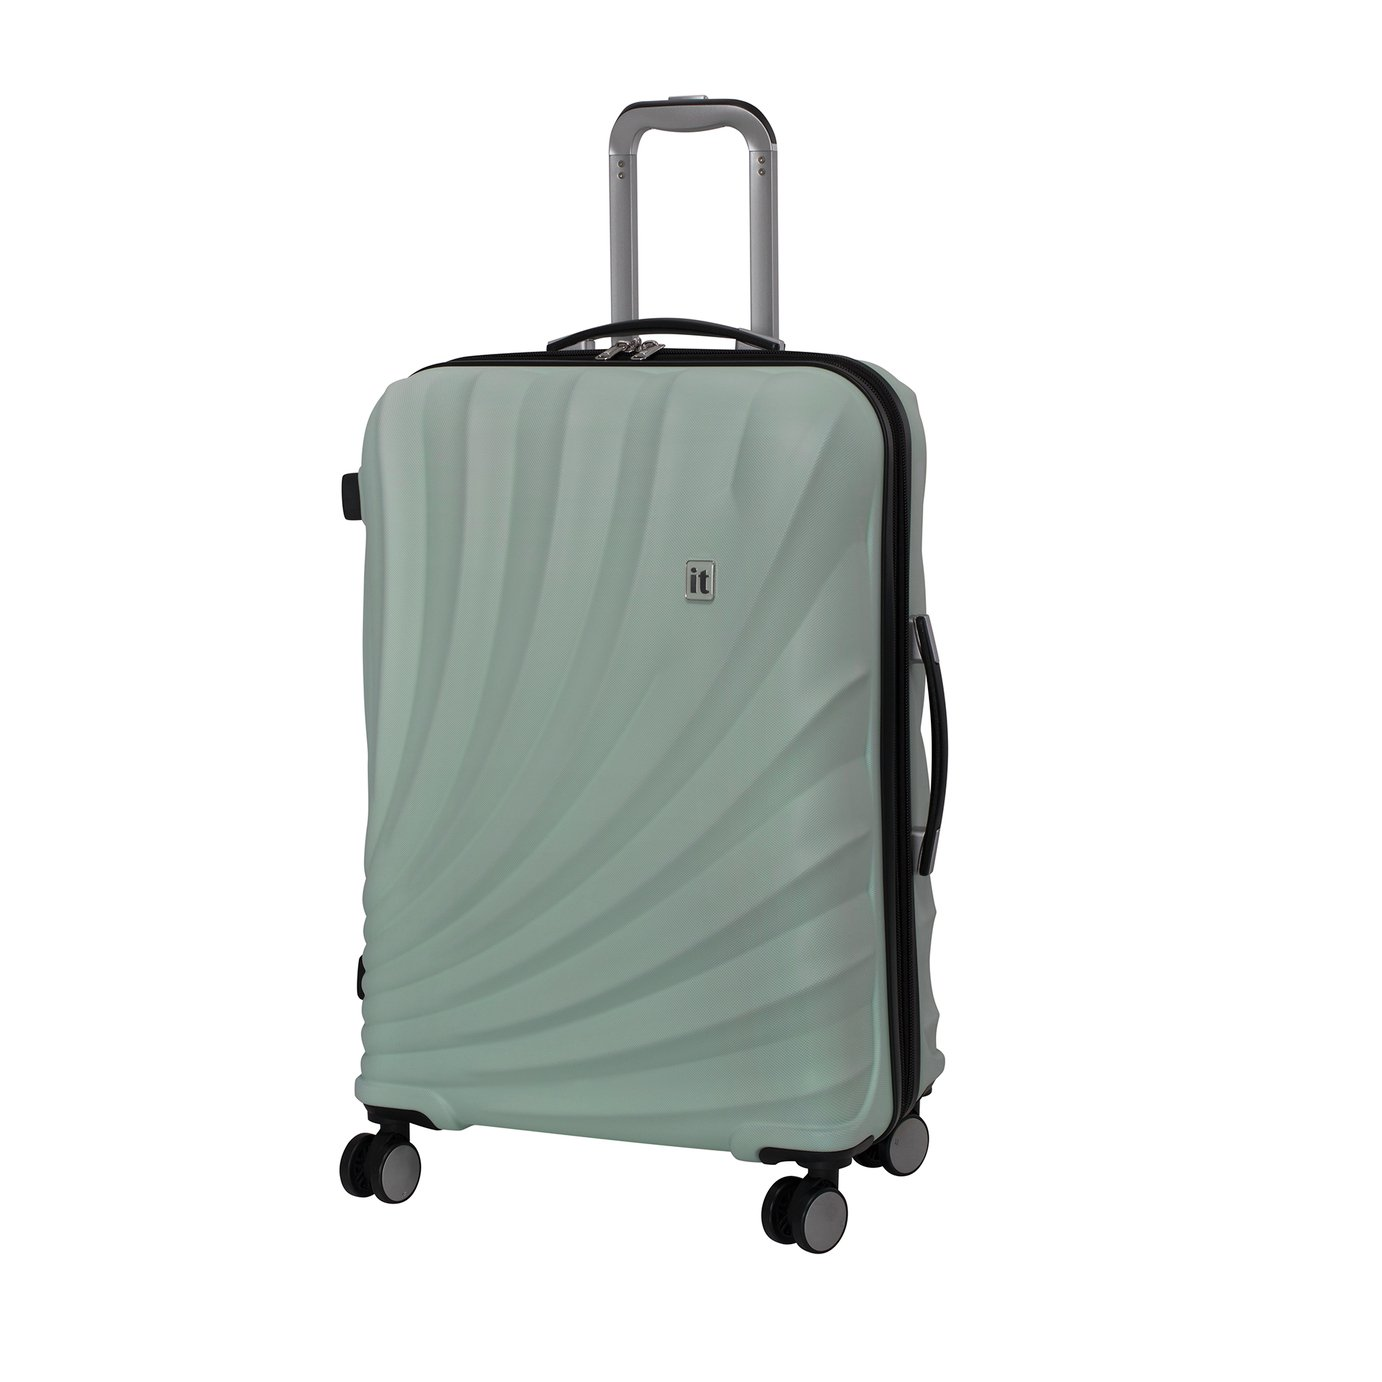 it Luggage Pagoda Medium 8 Wheel Hard Suitcase - Pastel